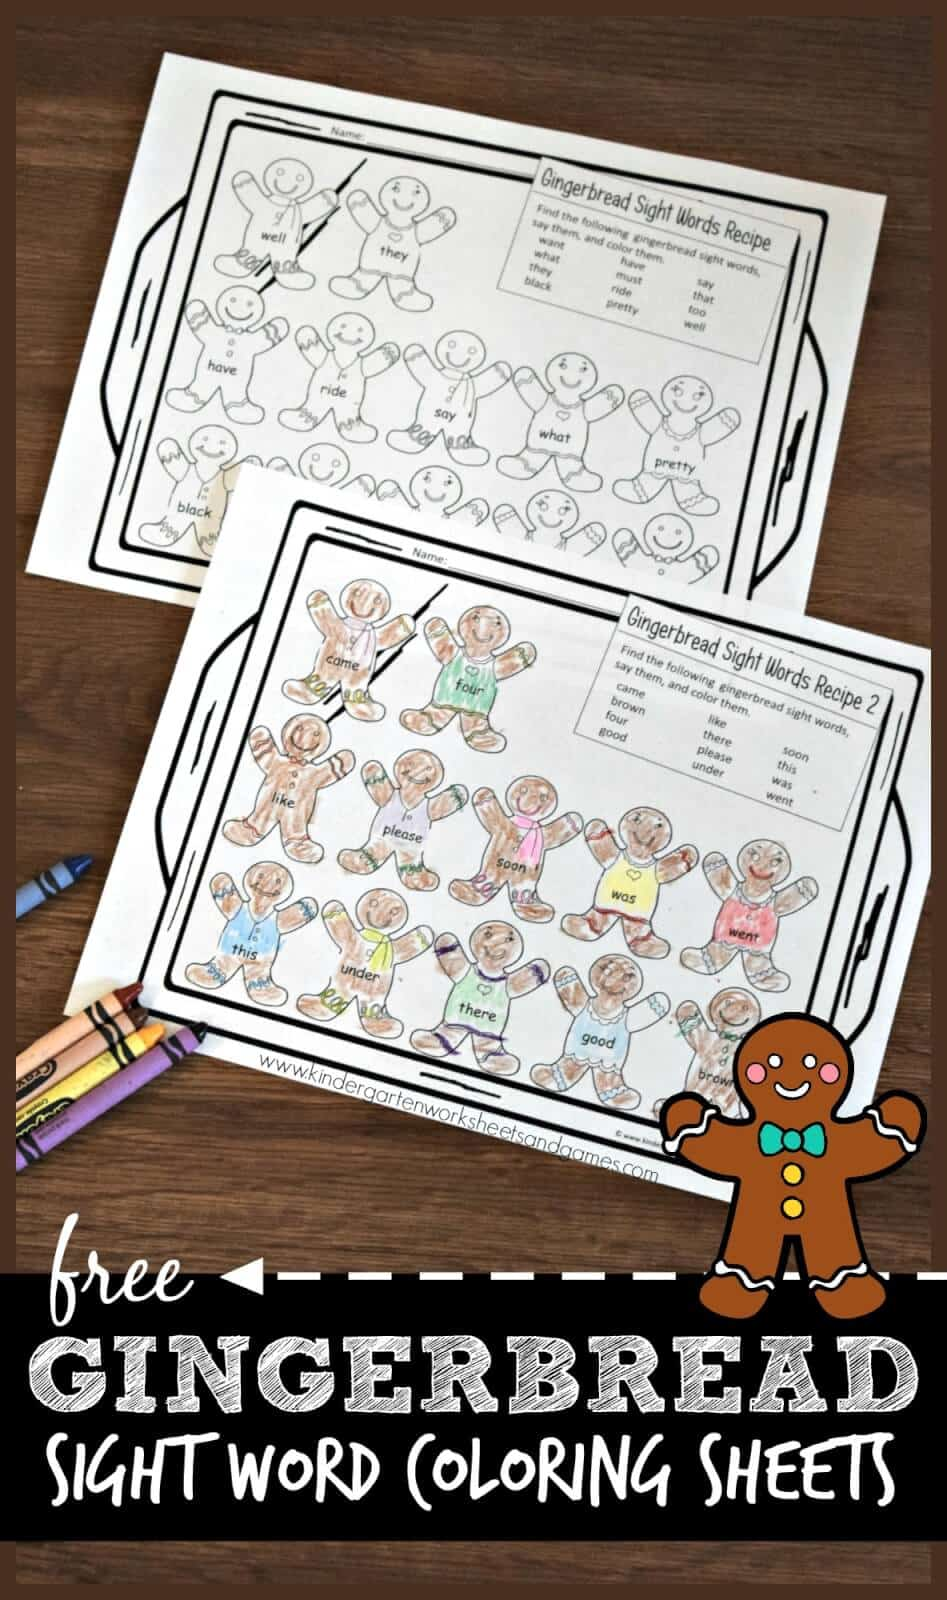 Free-GINGERBREAD-Sight-Word-Coloring-Sheets